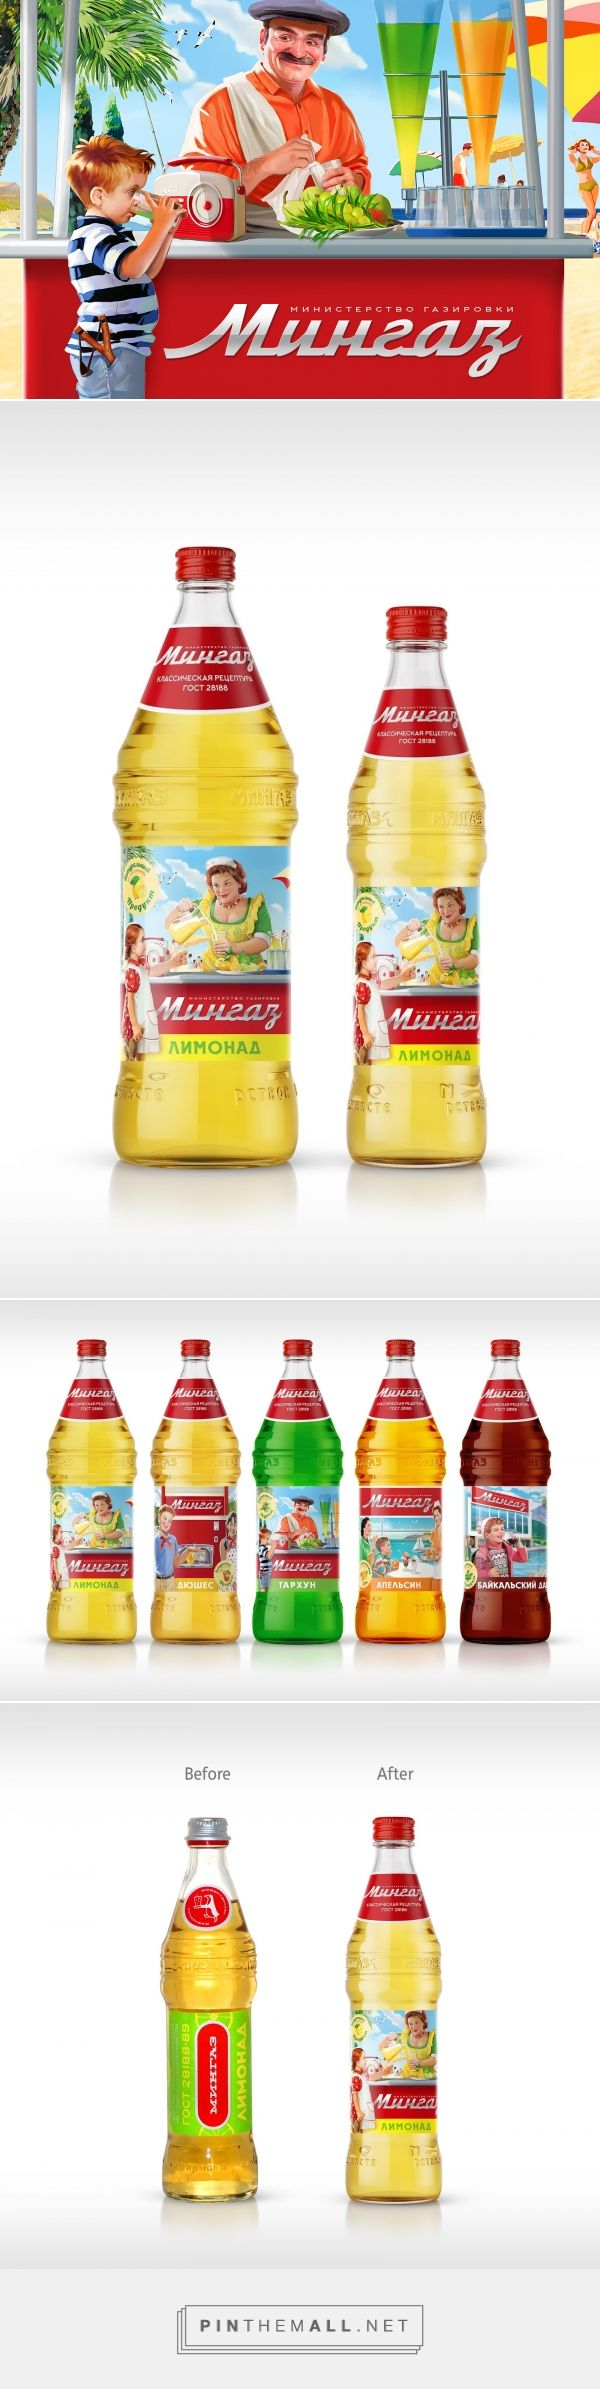 Tutorial lighting drinks and other product photography - Mingaz Lemonades Redesign